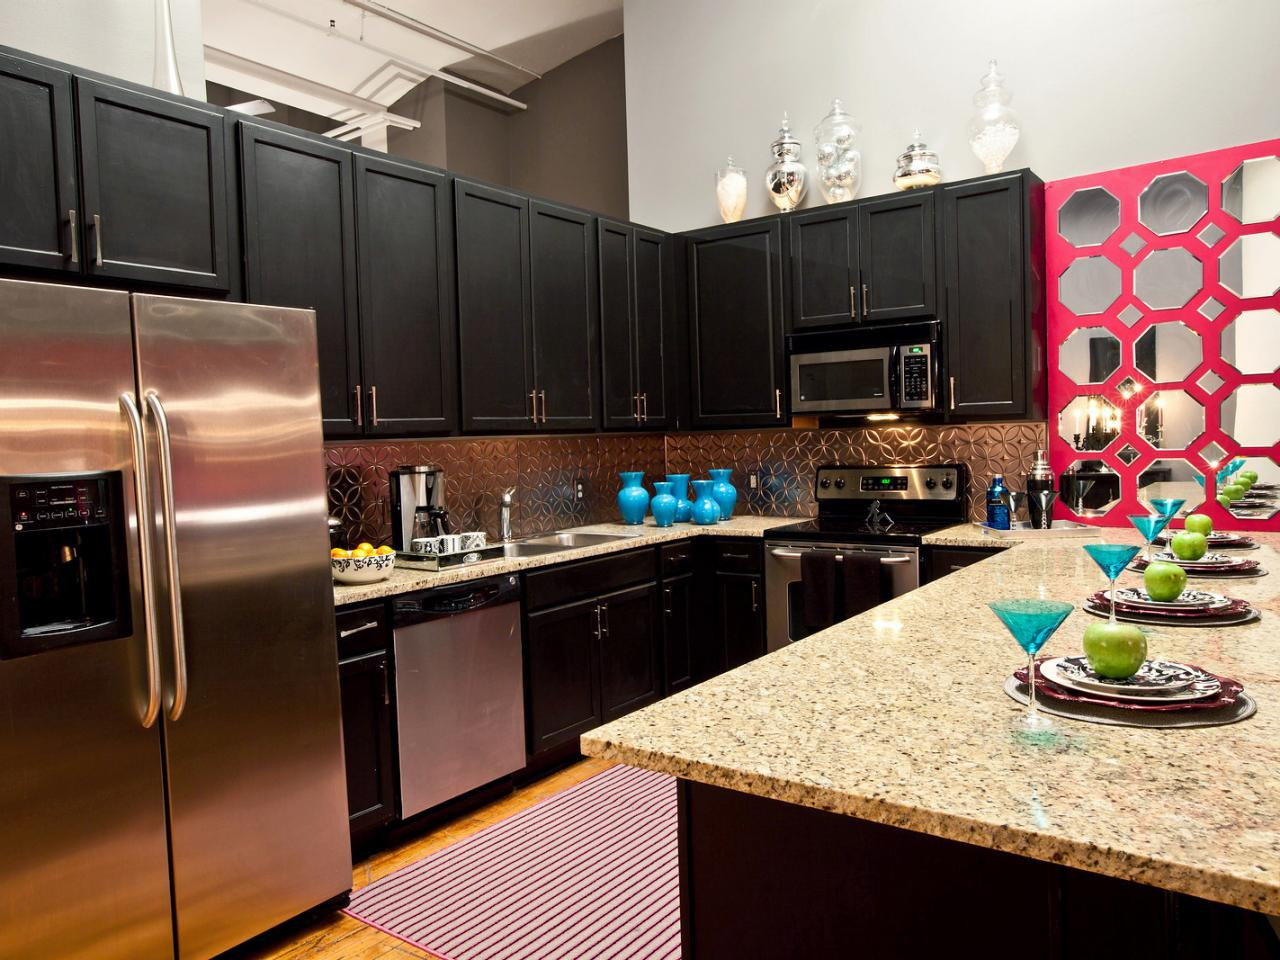 6 Decorating Ideas for Above Kitchen Cabinets - Reliable ... on Kitchen Decoration Ideas  id=19780